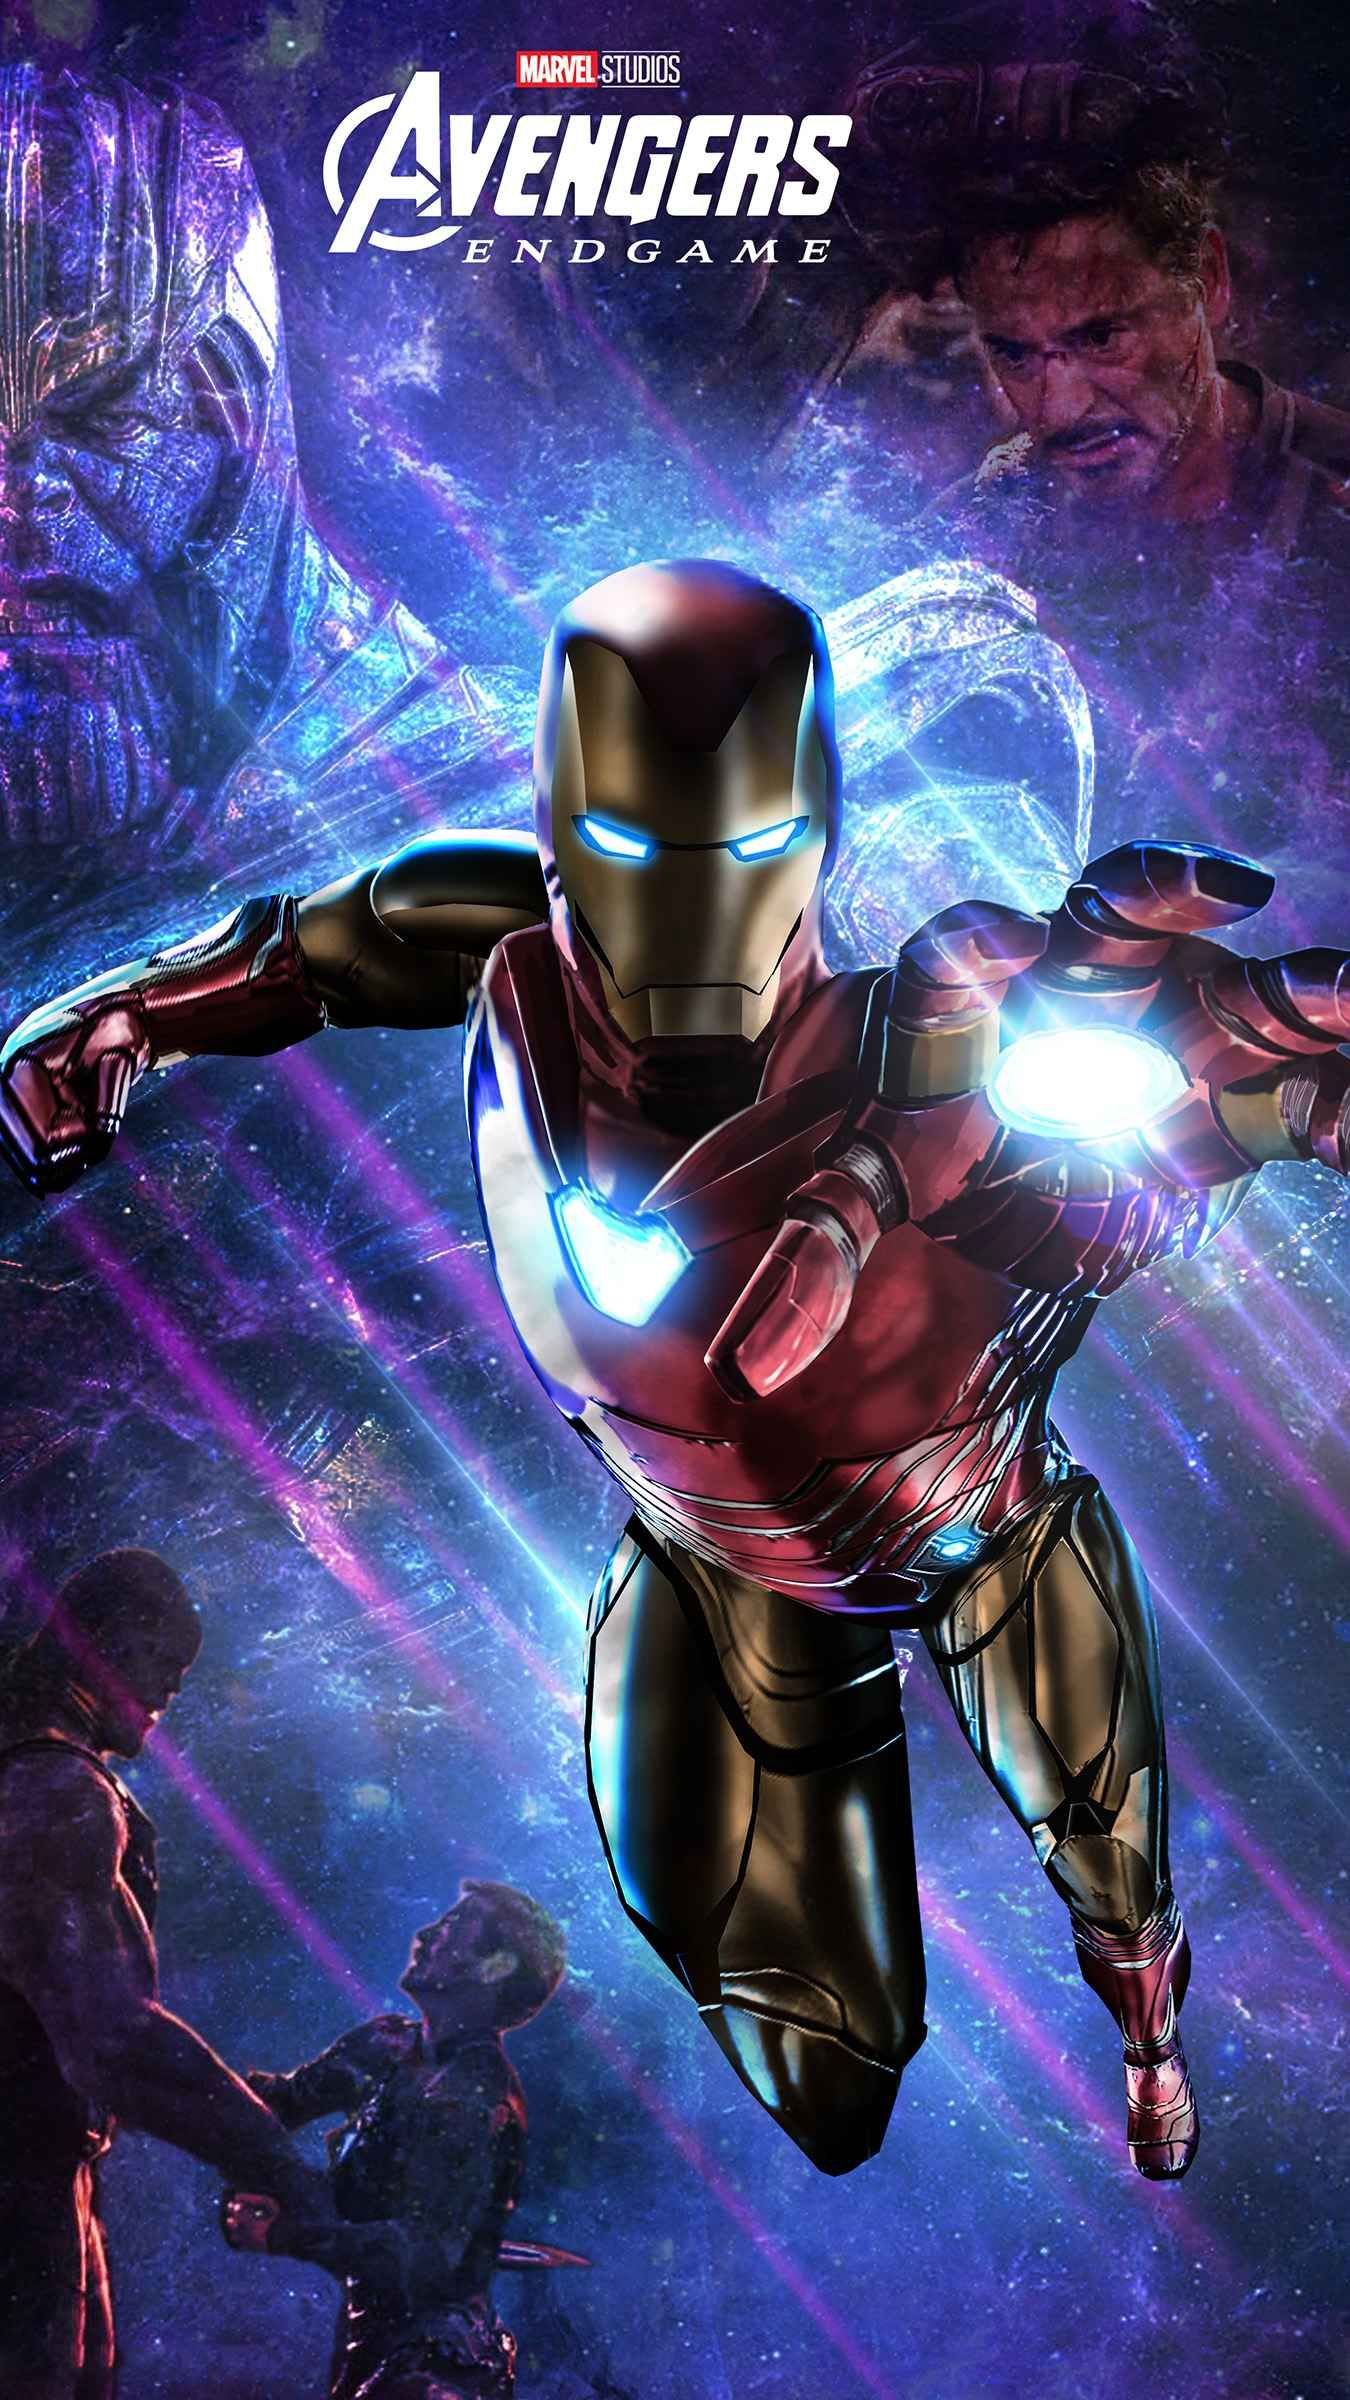 Avengers Endgame Iron Man Iphone Wallpaper In 2020 Iron Man Avengers Marvel Iron Man Captain America Movie